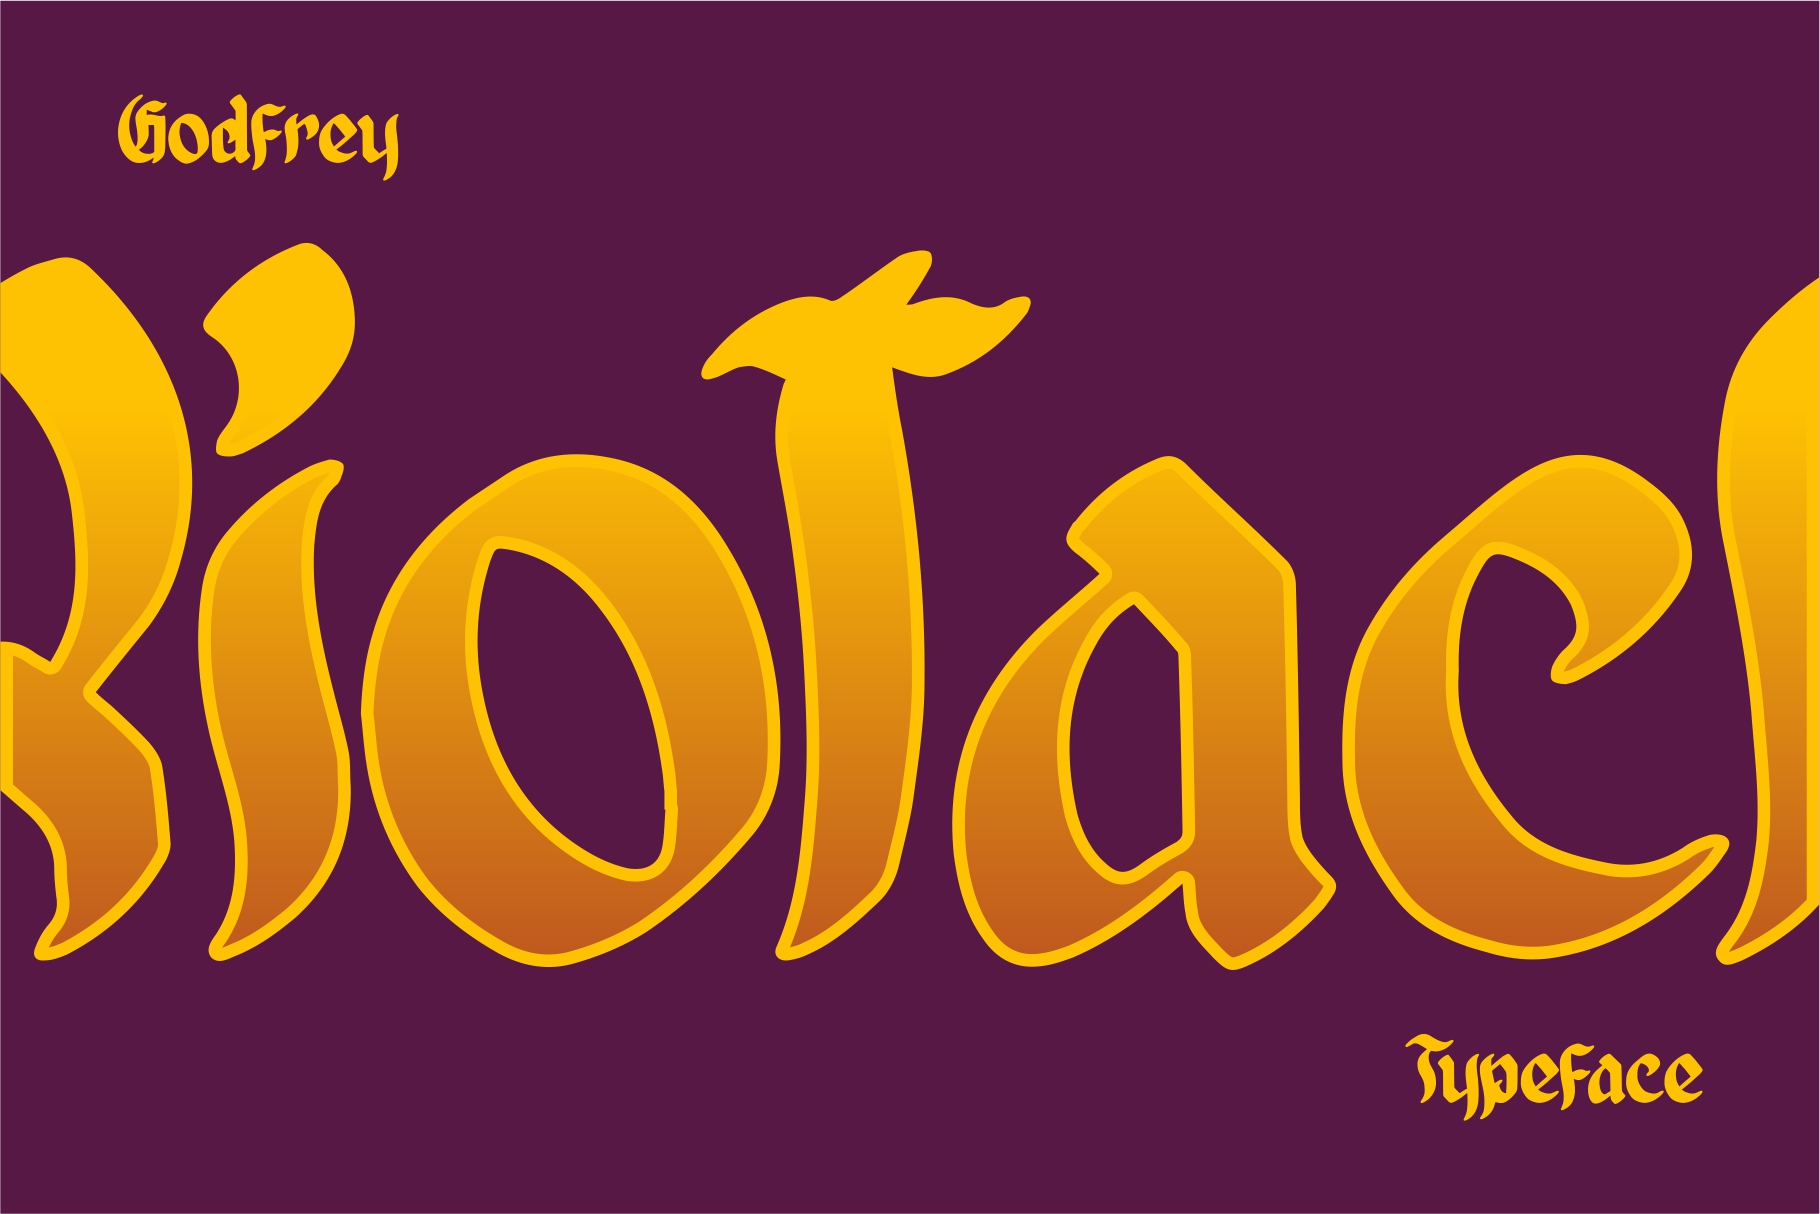 GODFREY - Blackletter example image 7